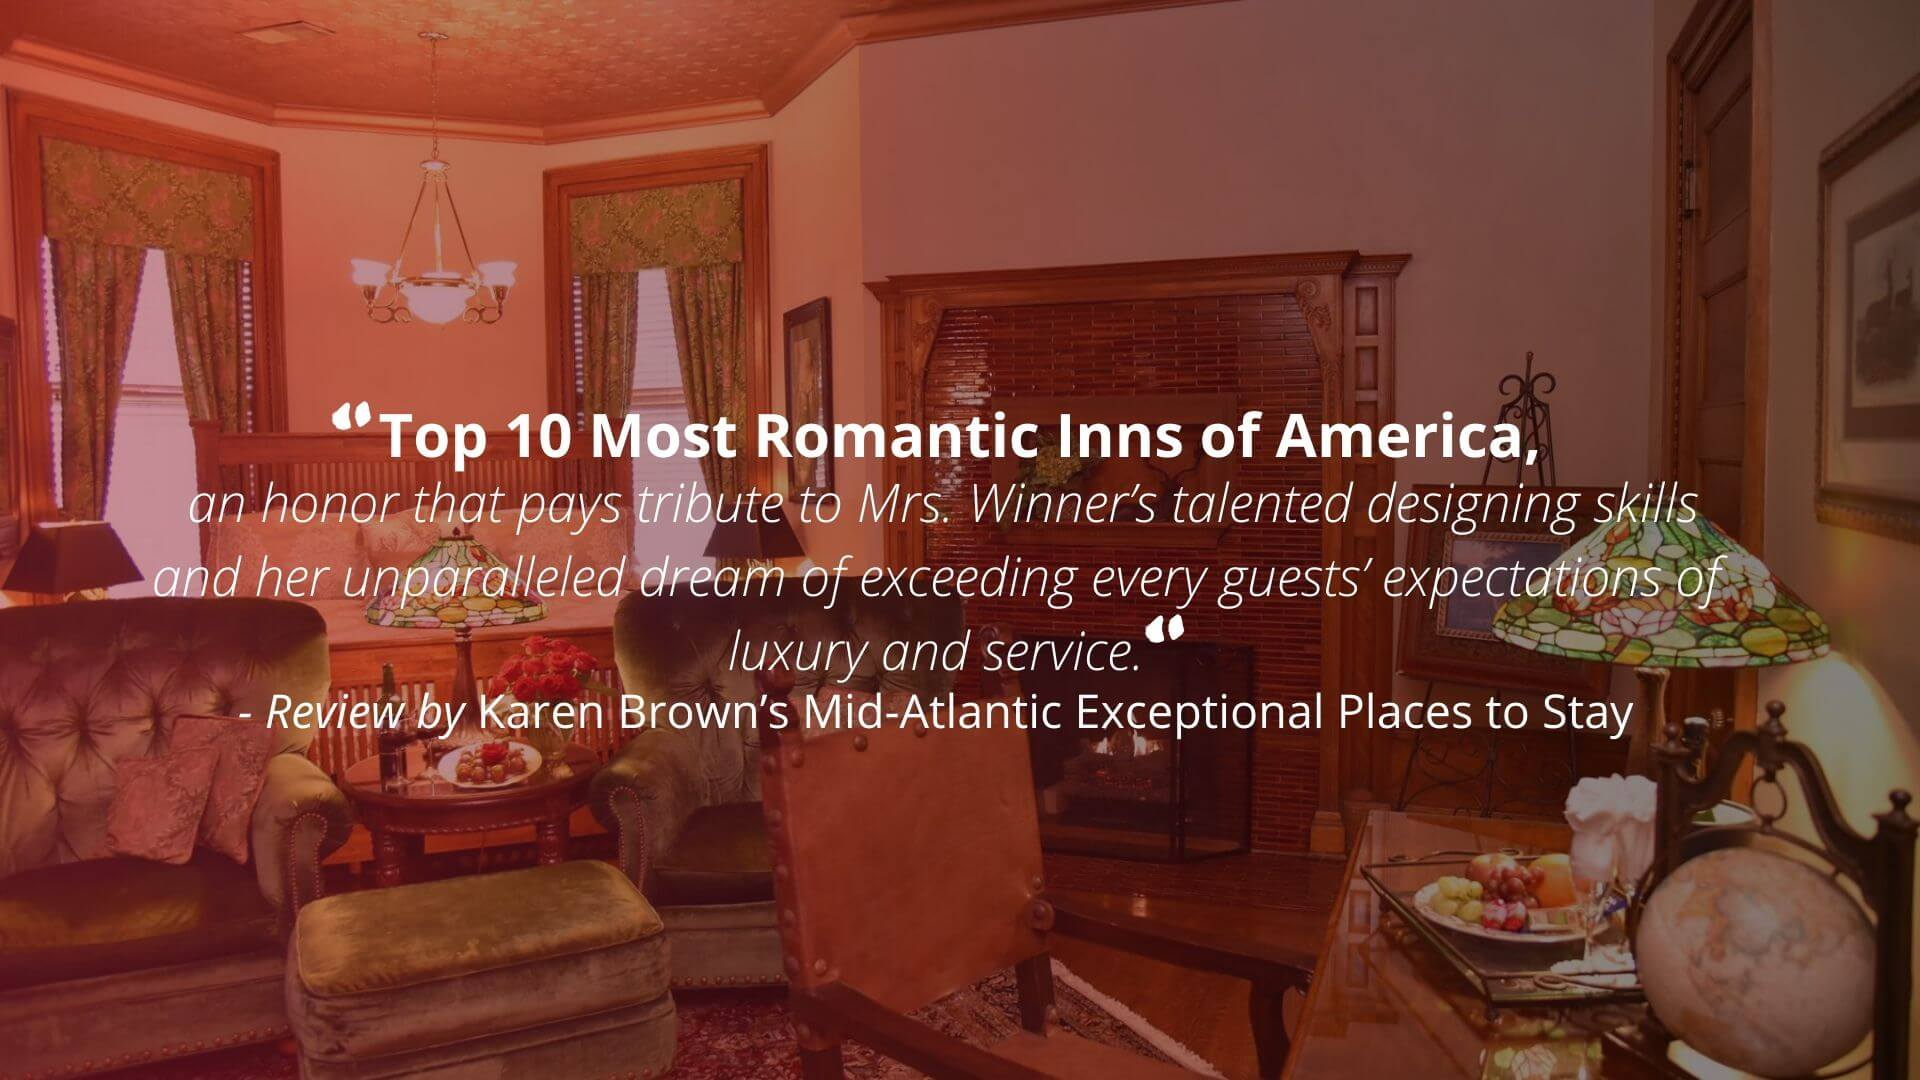 """Top 10 Most Romantic Inns of America, an honor that pays tribute to Mrs. Winner's talented designing skills and her unparalleled dream of exceeding every guests' expectations of luxury and service."" - Review by Karen Brown's Mid-Atlantic Exceptional Places to Stay"